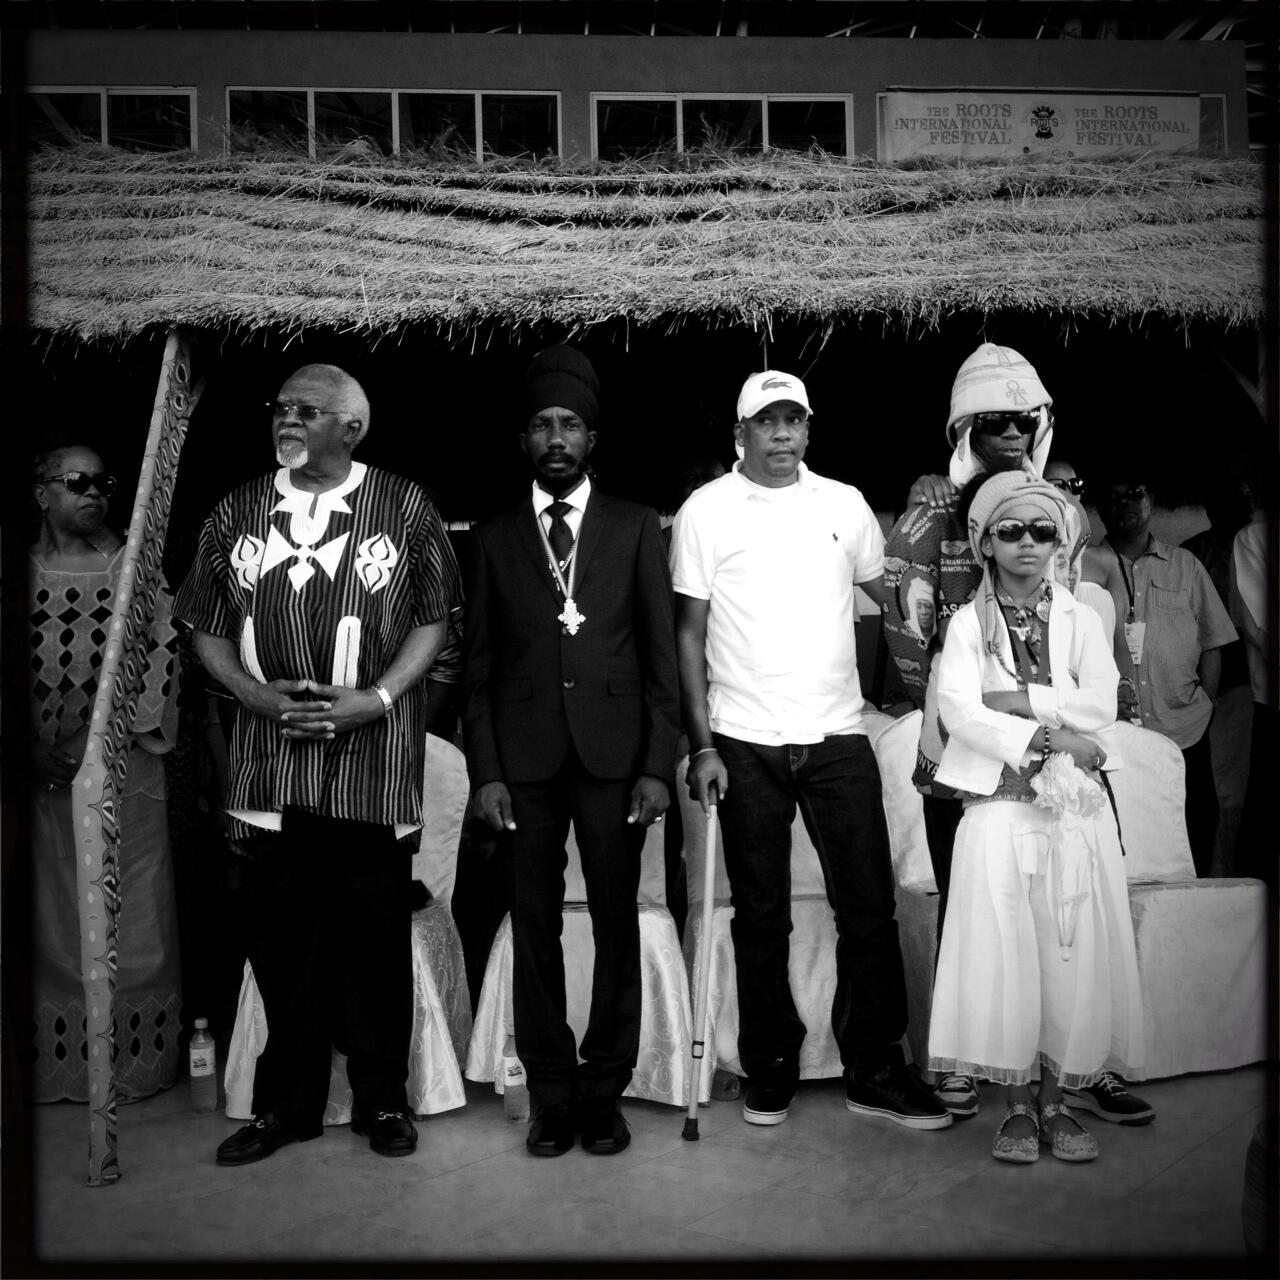 Dr Julius #Garvey #Sizzla #Scratcylus #Roots Festival 2014 official opening, Banjul #Gambia W #Africa © Jason Florio http://t.co/XHR4gbOwkS